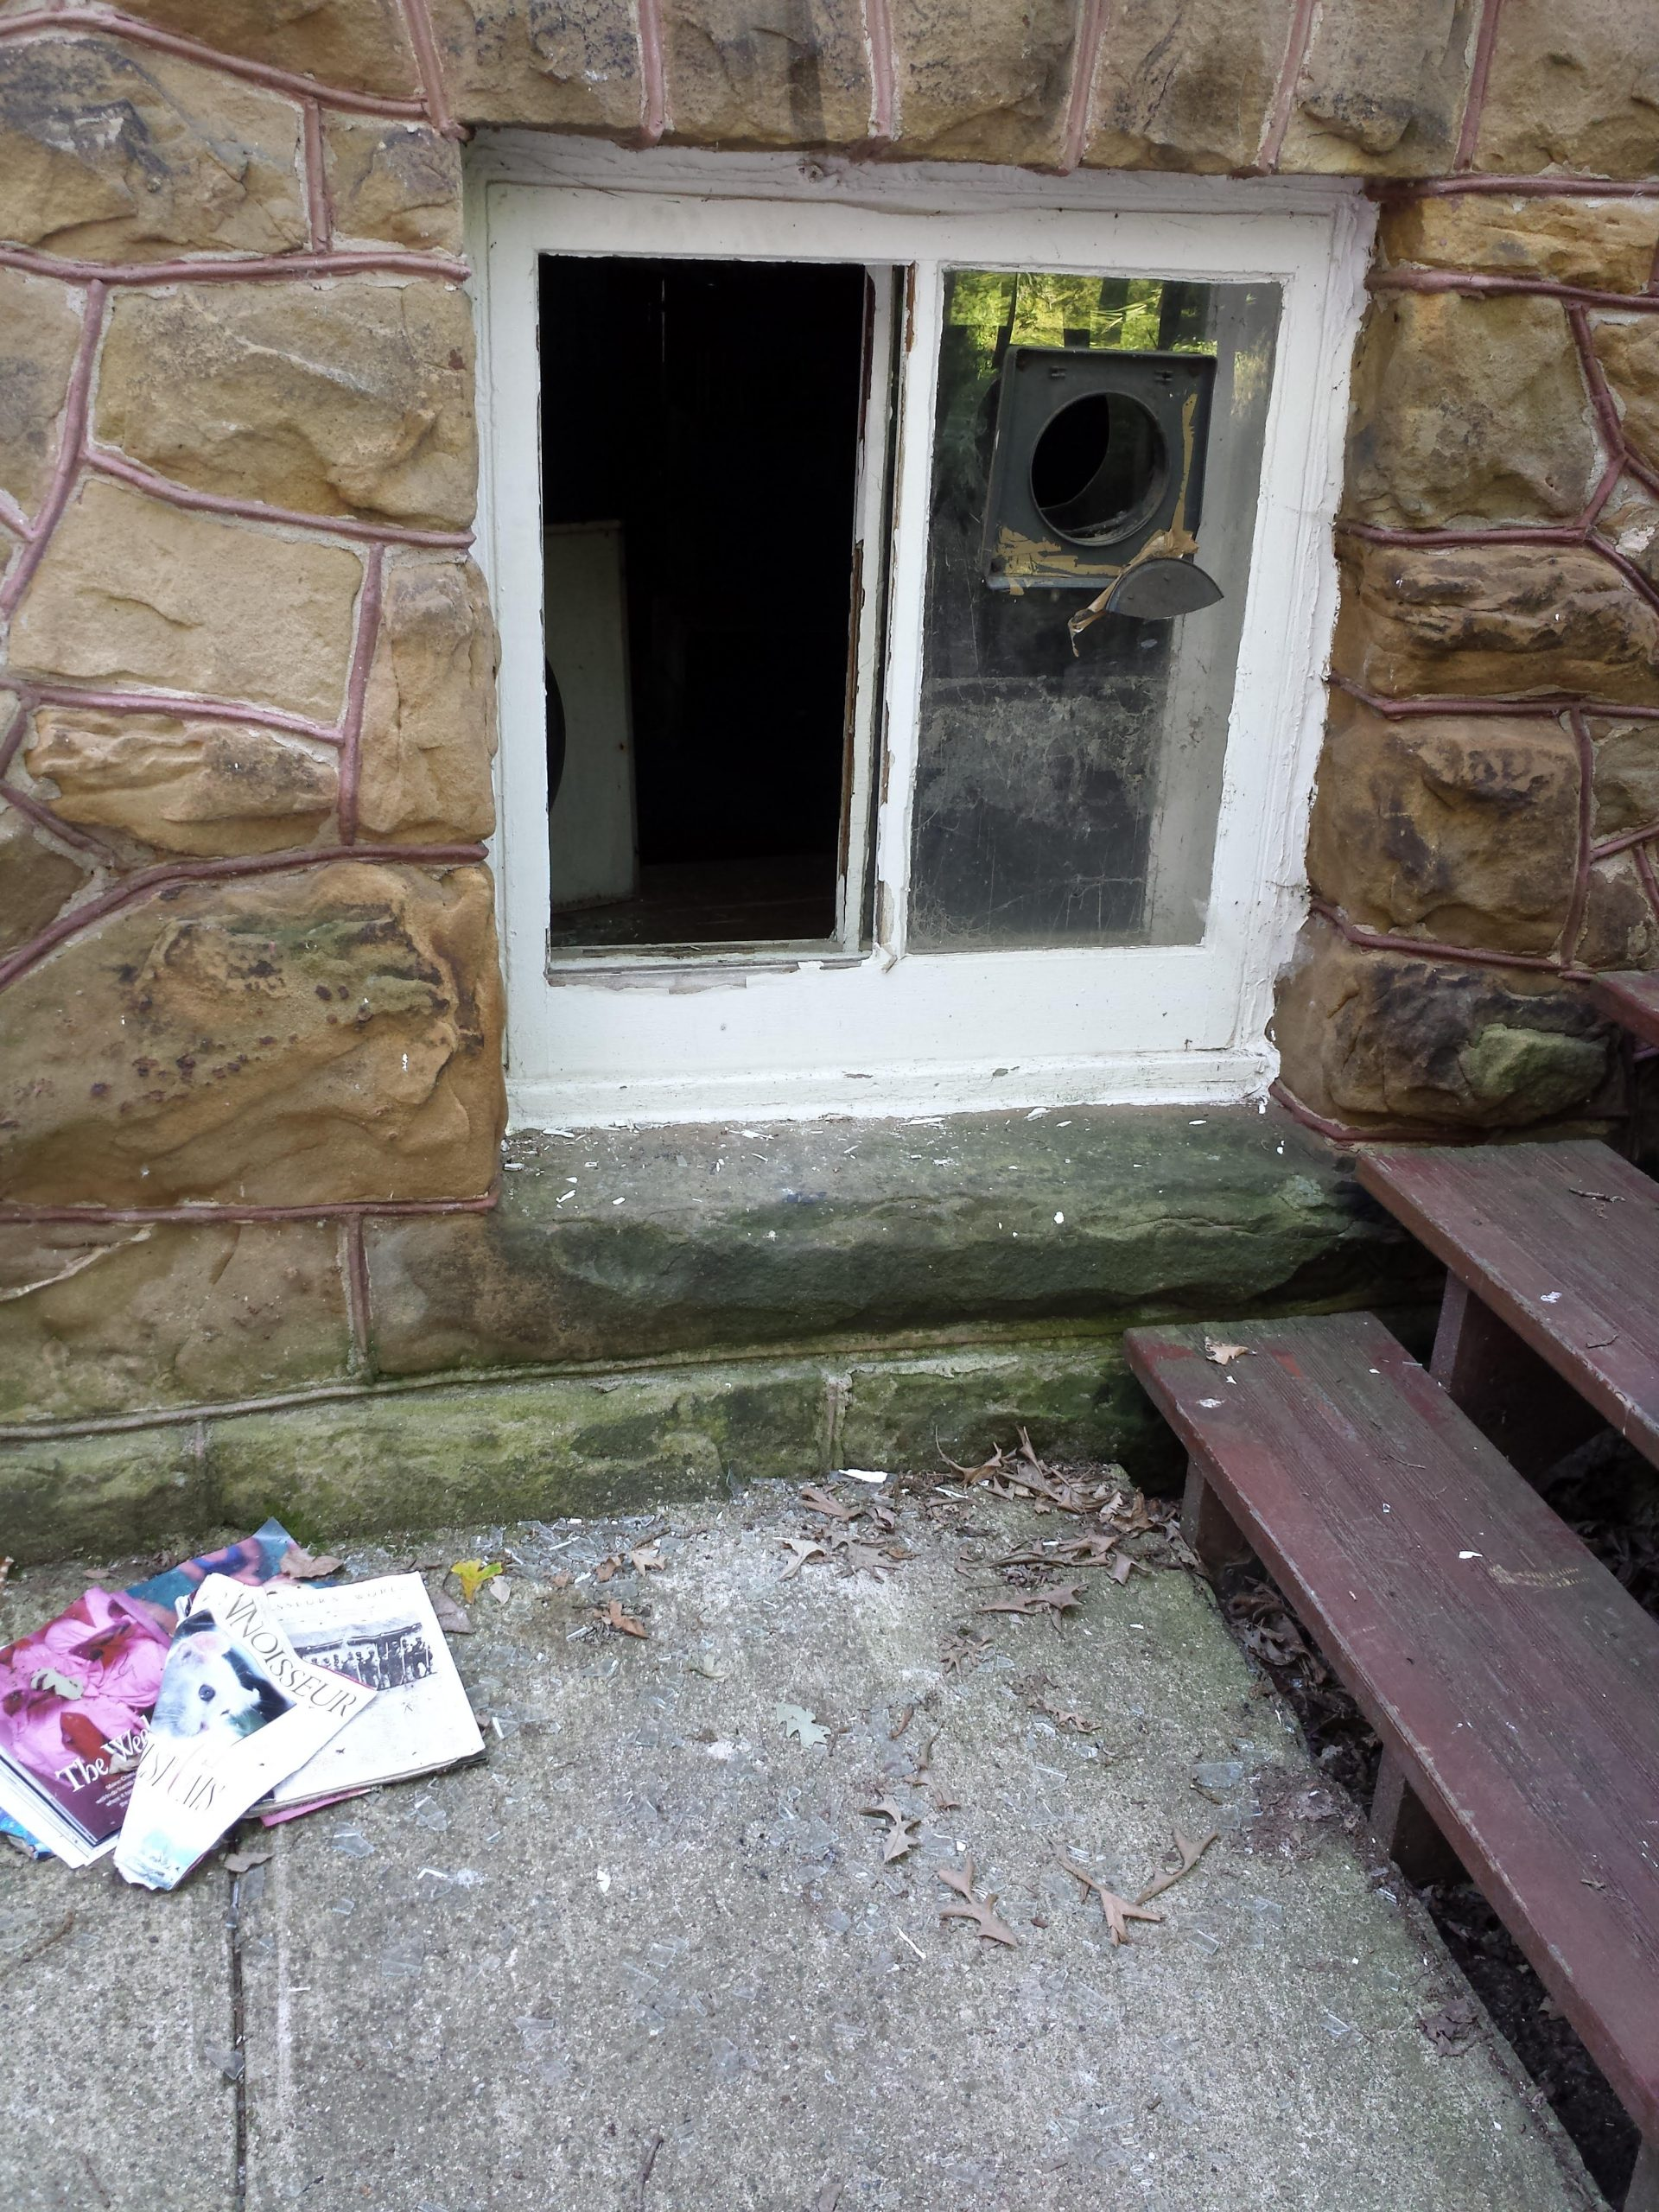 Vandals broke into the home after the Koessels moved out.